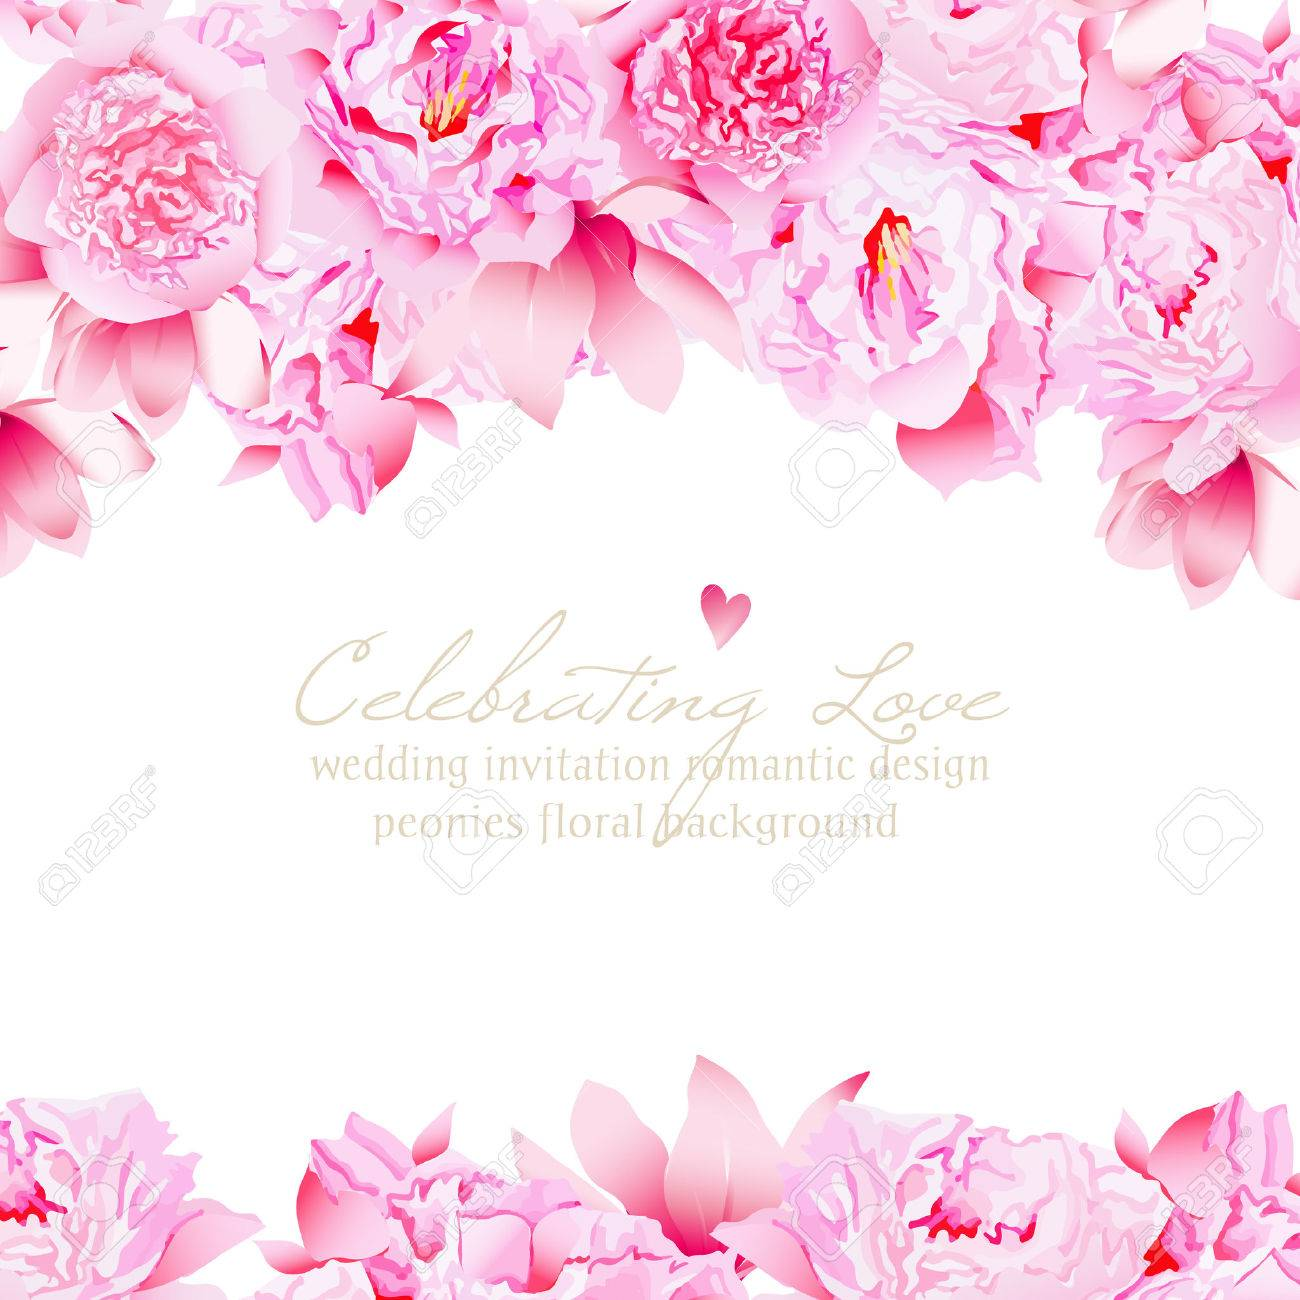 delicate peonies and camellia floral vector wedding design royalty